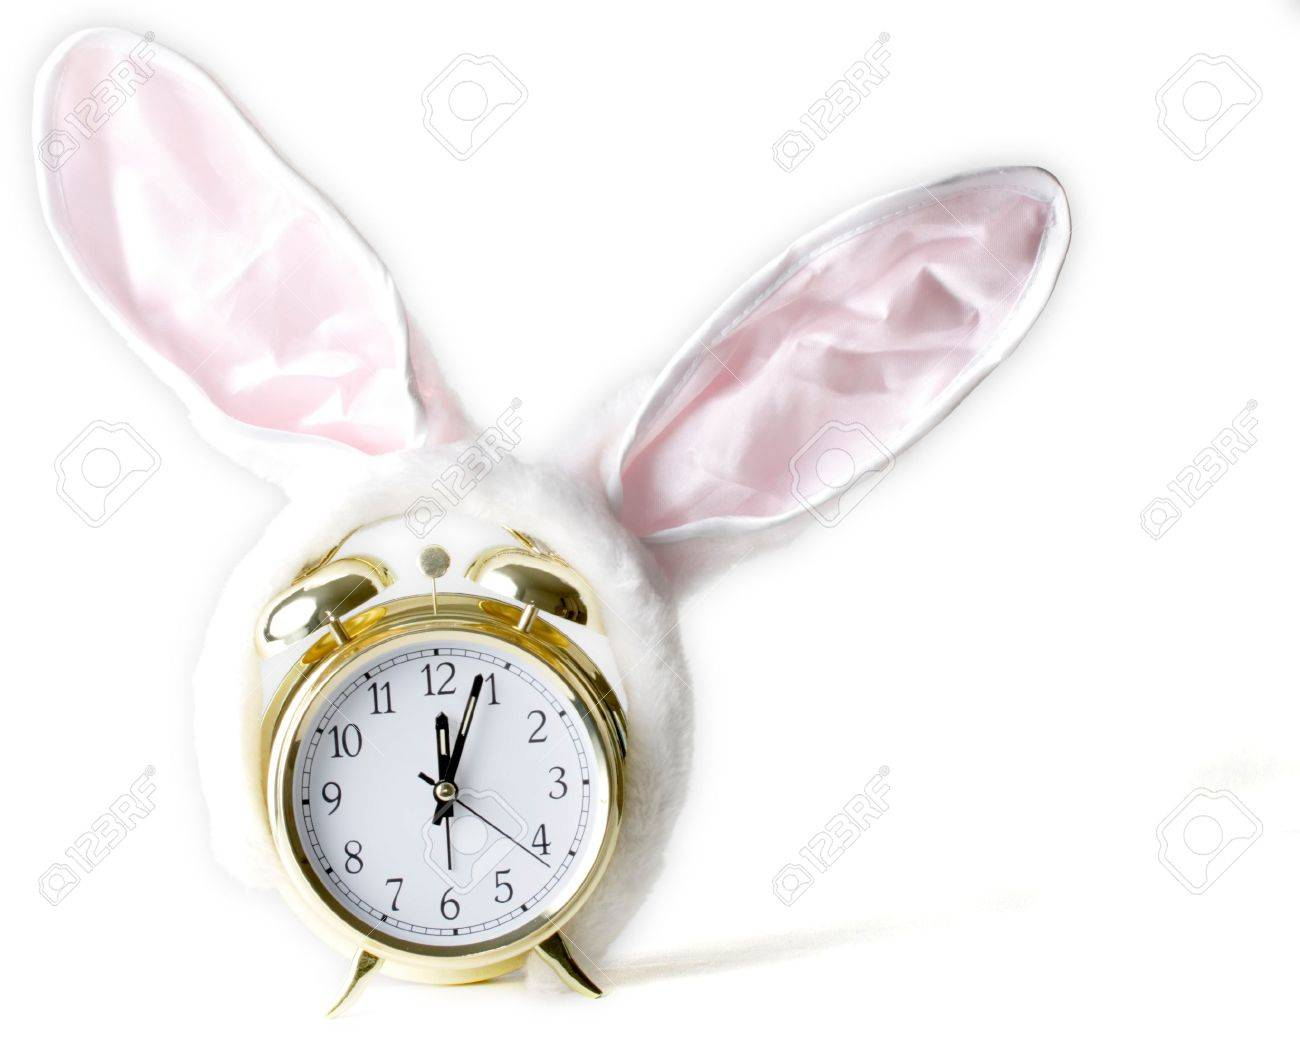 Gold alarm clock with bunny ears on showing Easter time Stock Photo - 328212